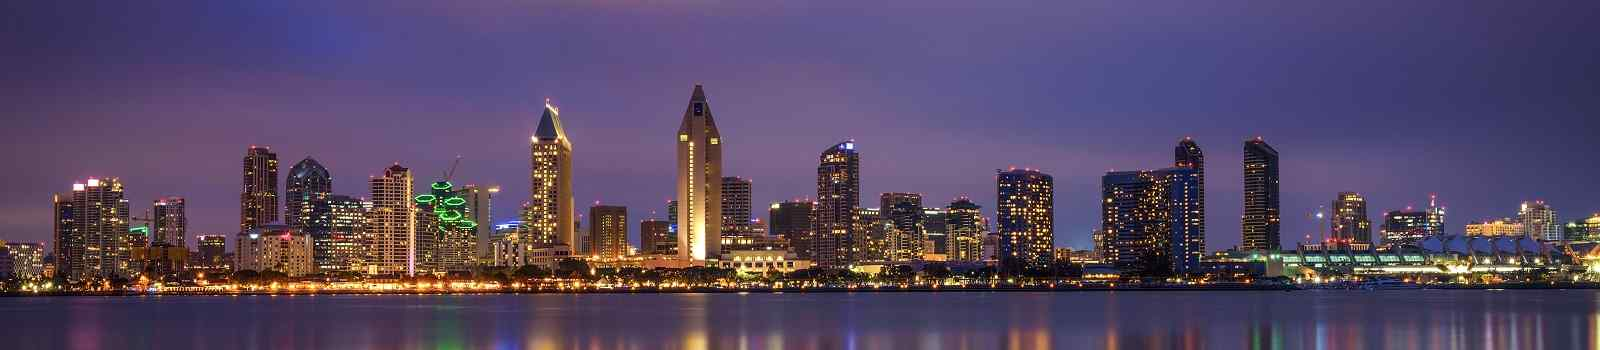 FAMILIE-WEST -Night skyline of San Diego downtown  California  Long exposure  shutterstock 549258097